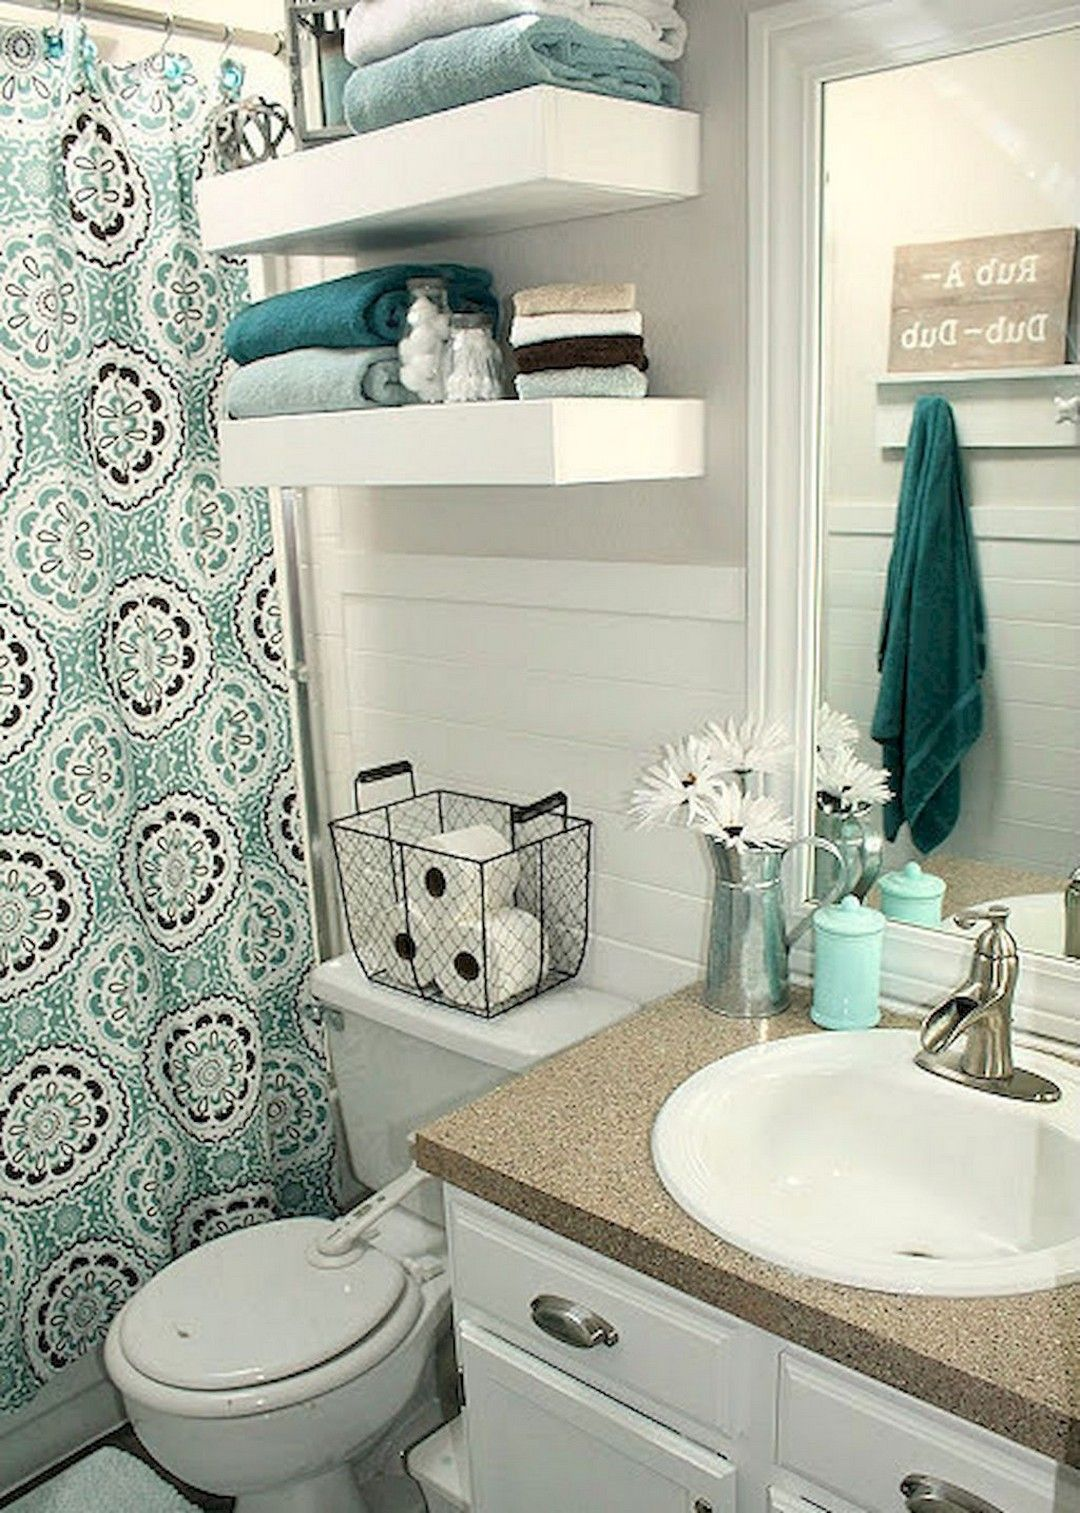 Ordinaire 90 DIY Apartment Decorating Ideas On A Budget. Small Apartment DecoratingBathroom  Decor ...